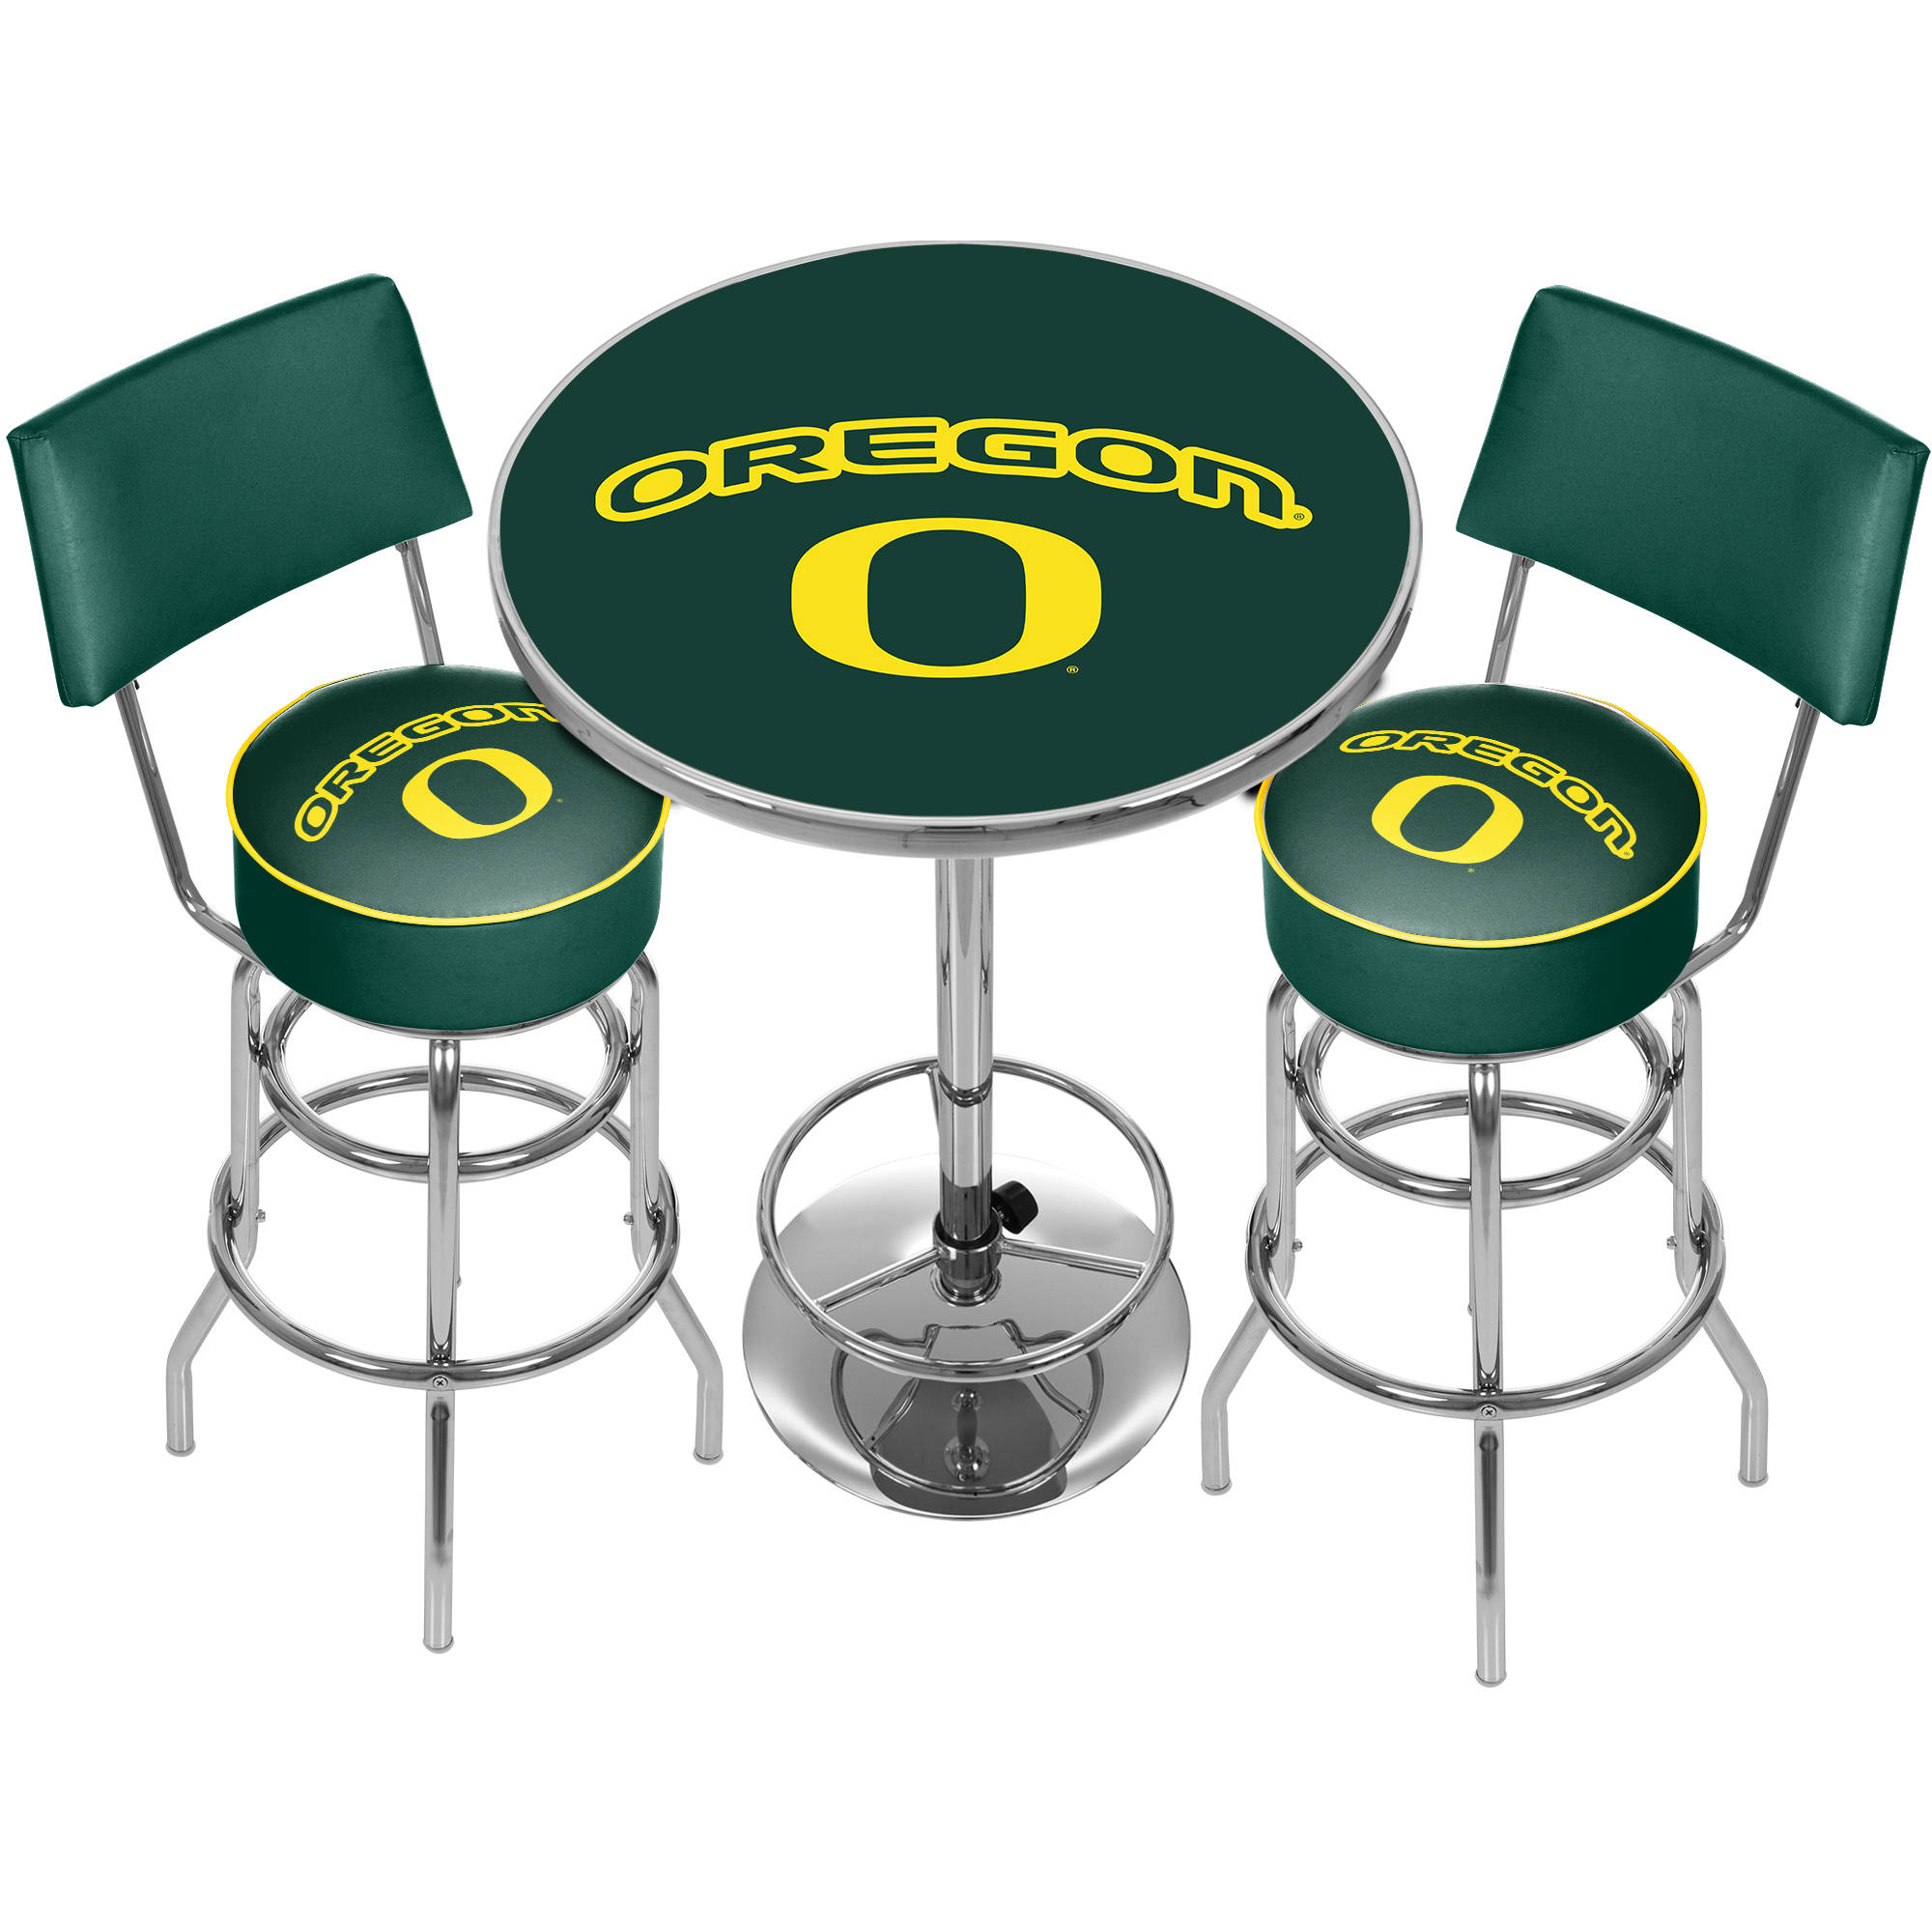 University of Oregon Game Room Combo, 2 Stools with Back and Table